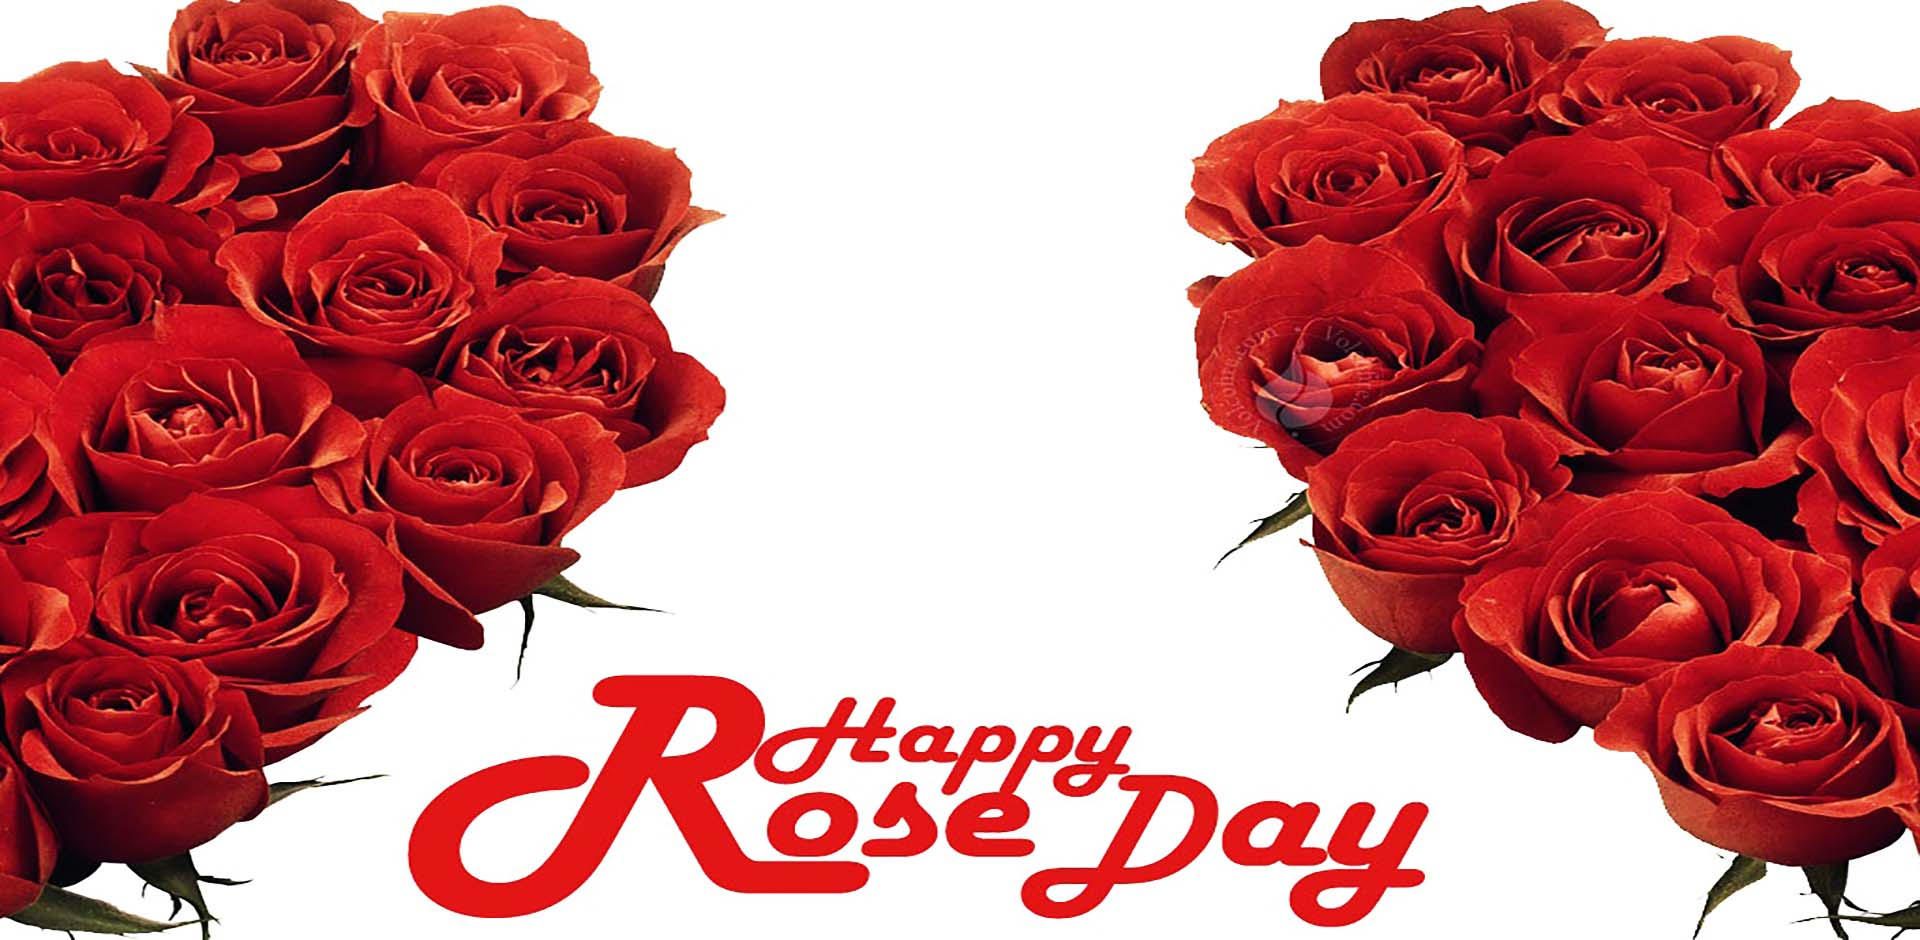 rose-day-beautiful-red-flowers